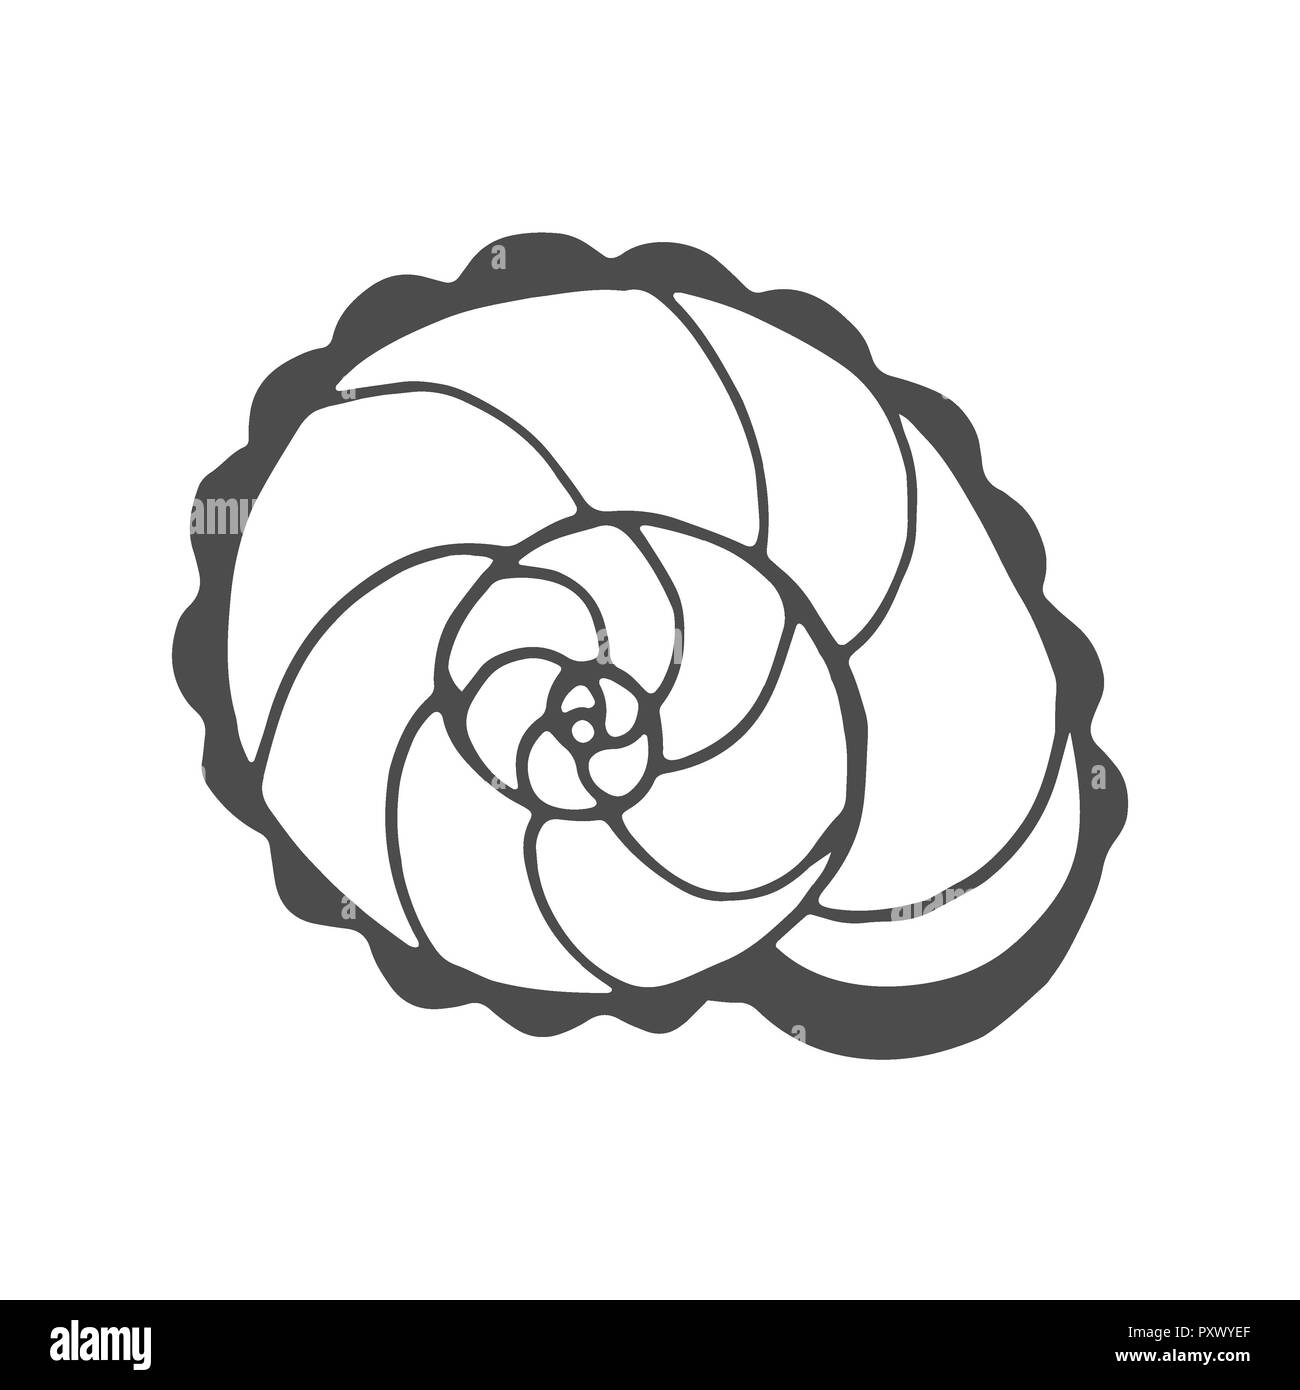 Coloriage Adulte Spirale.Vector Spiral Doodle Illustration Coloring Photos Vector Spiral